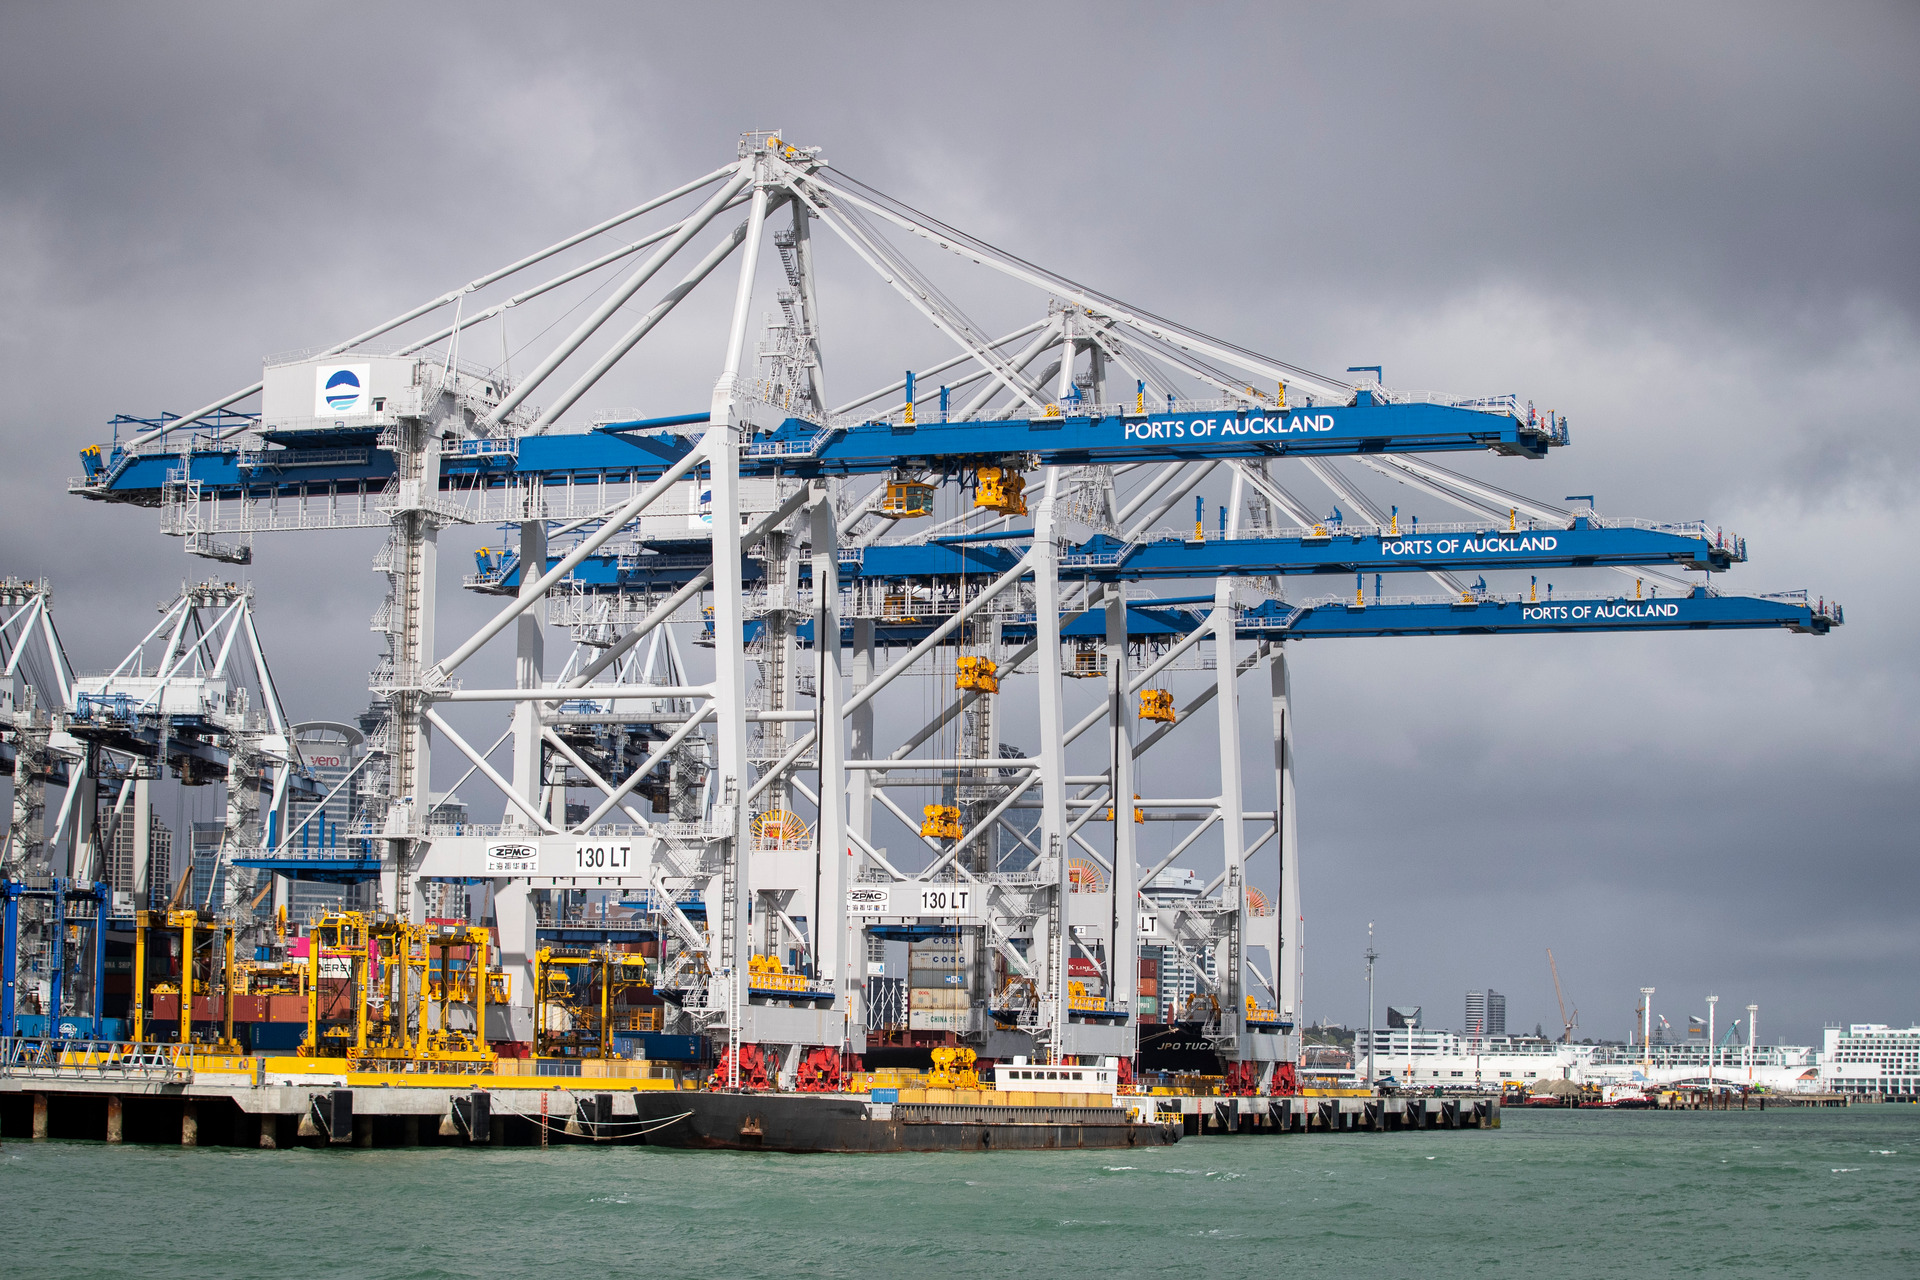 Ports of Auckland has to move, says Jacinda Ardern